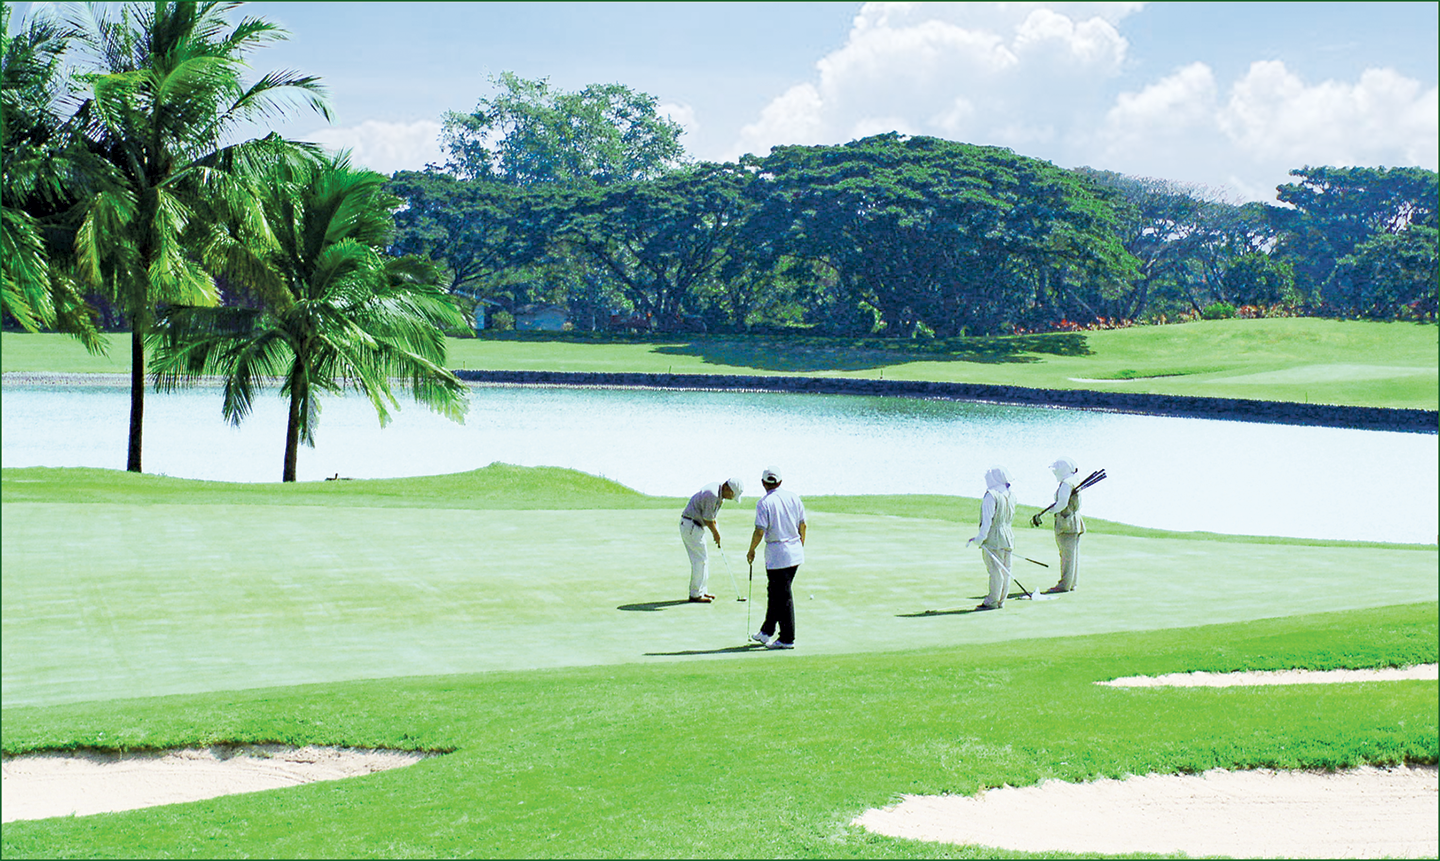 Overview of golf course named Mimosa Golf and Country Club